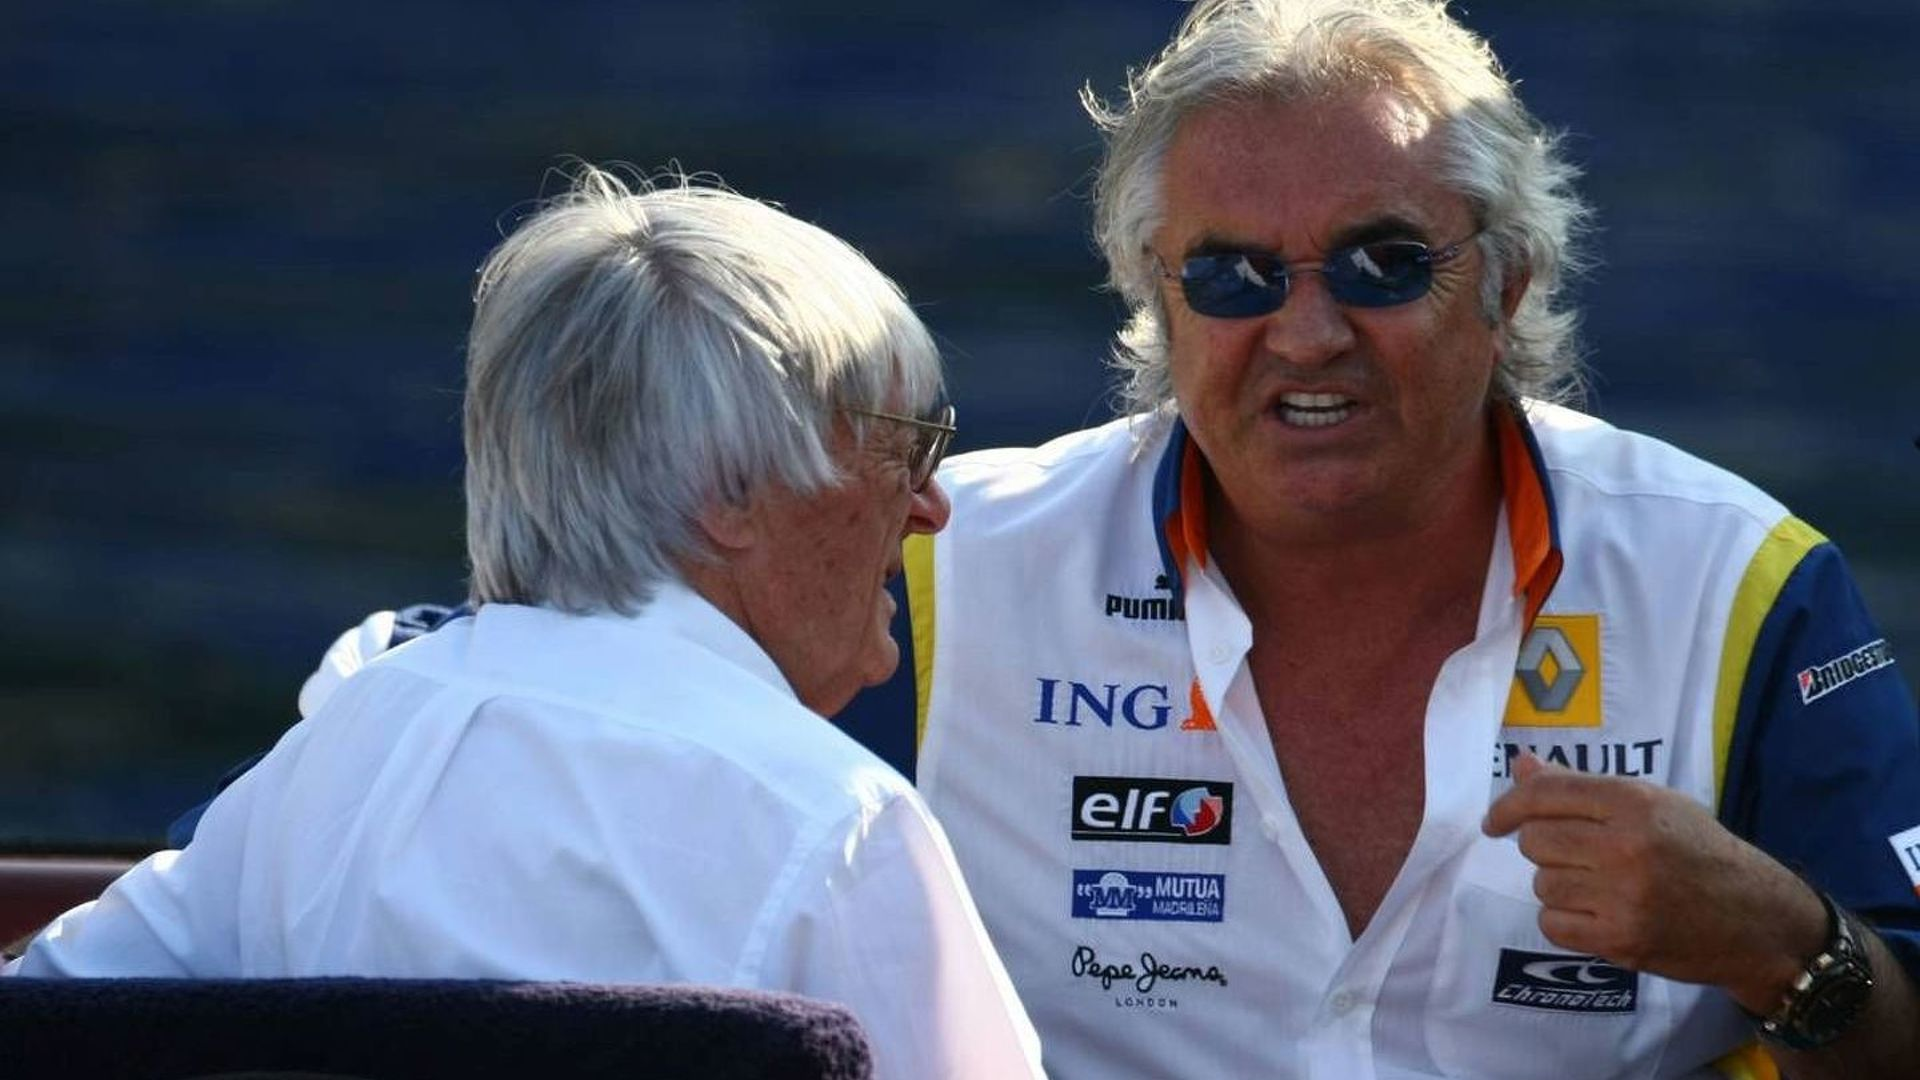 More negative headlines for Flavio Briatore